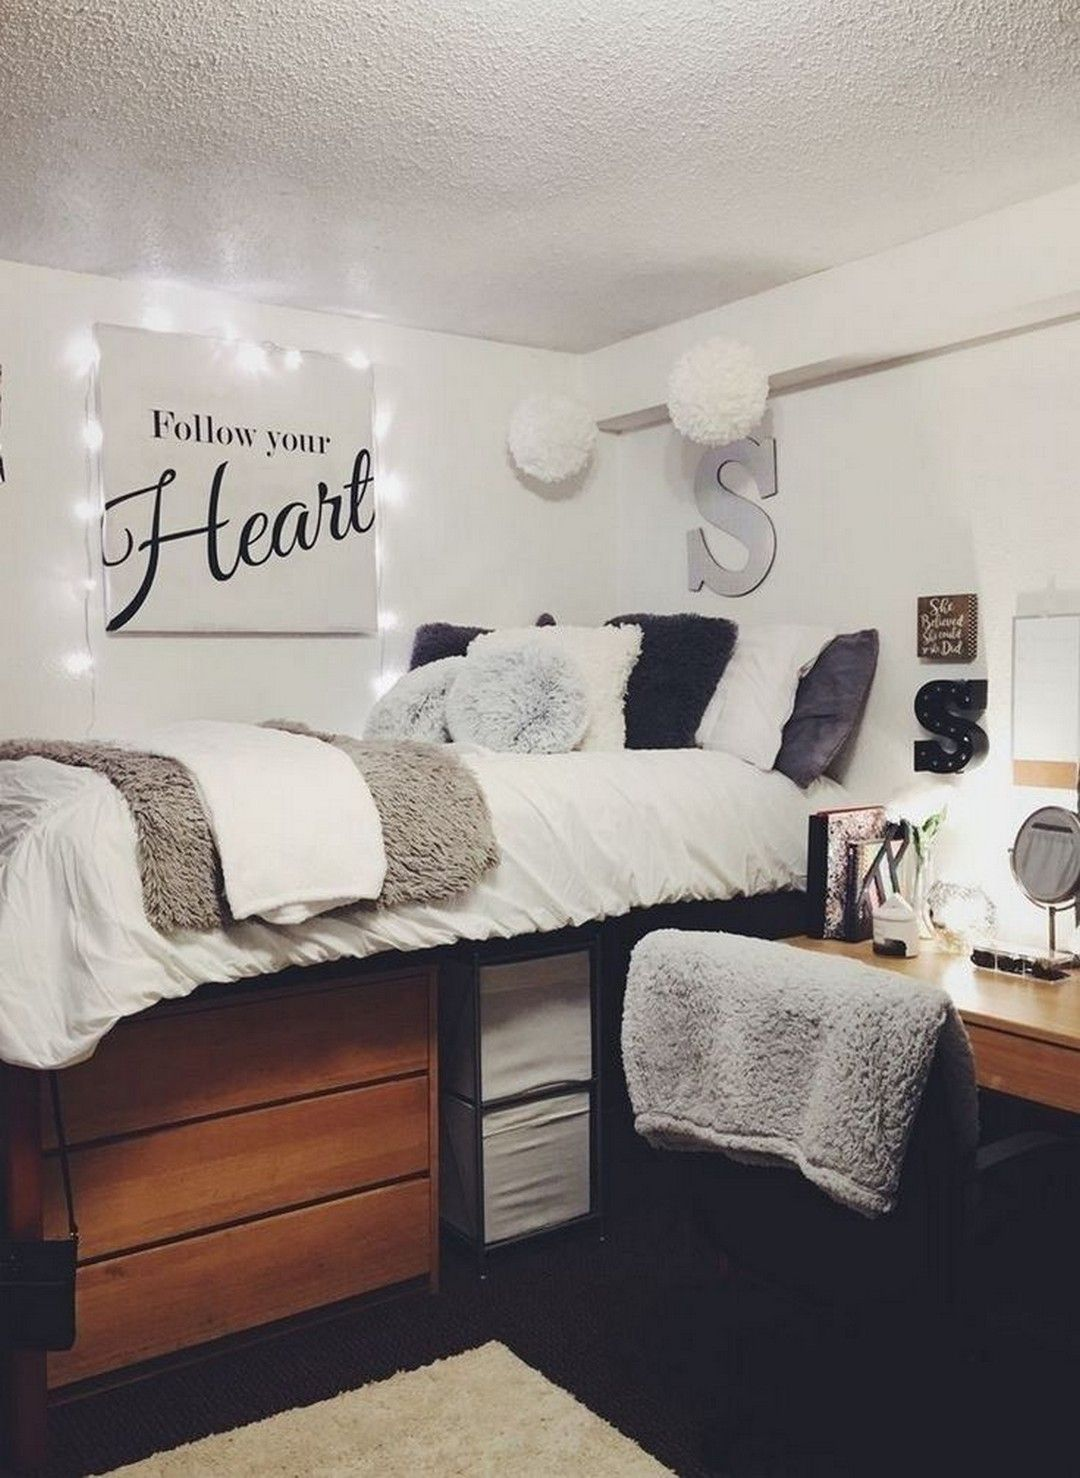 20 Cute Dorm Room Ideas That You Need to Copy Right Now